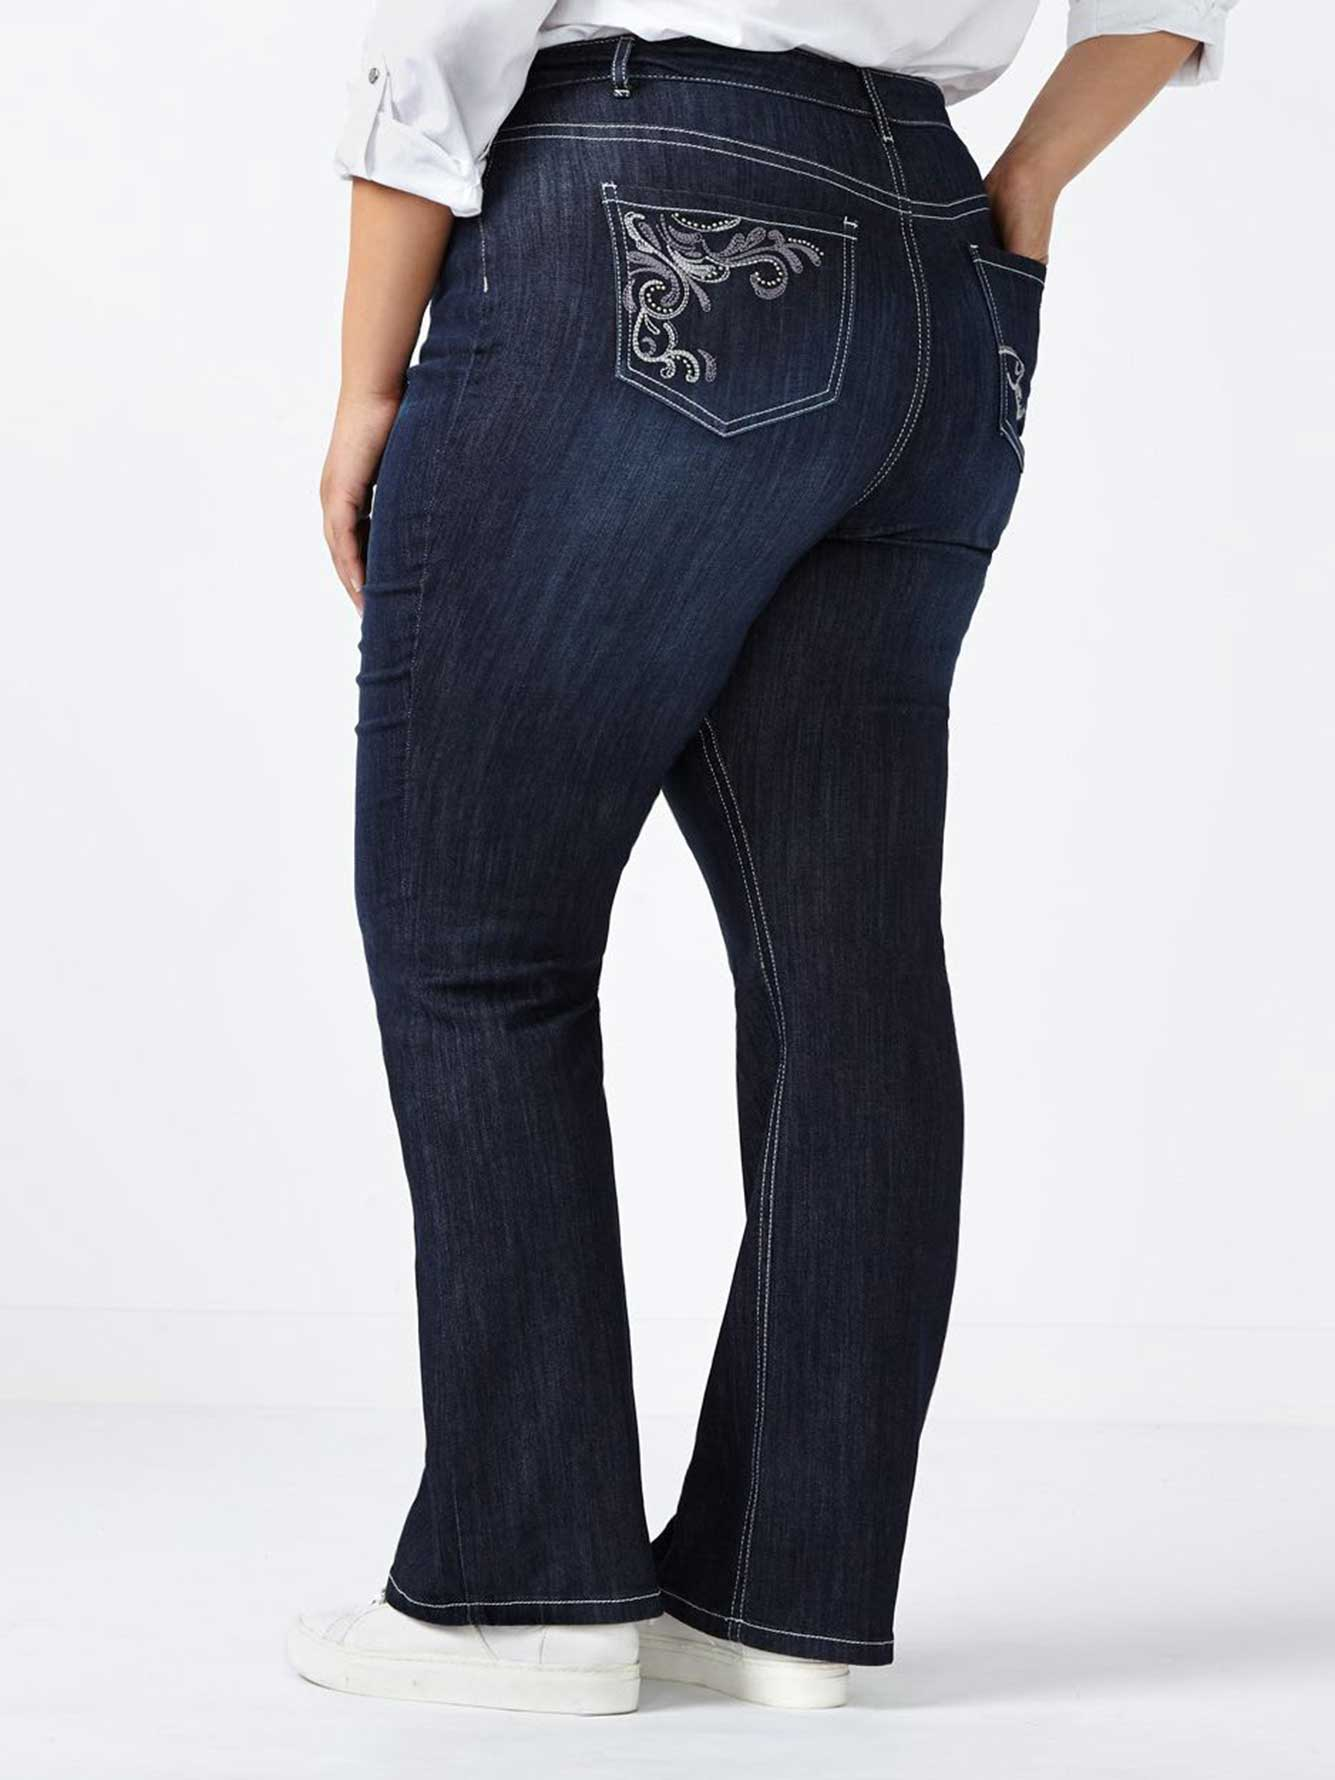 d/c JEANS - Petite Slightly Curvy Fit Bootcut Jean